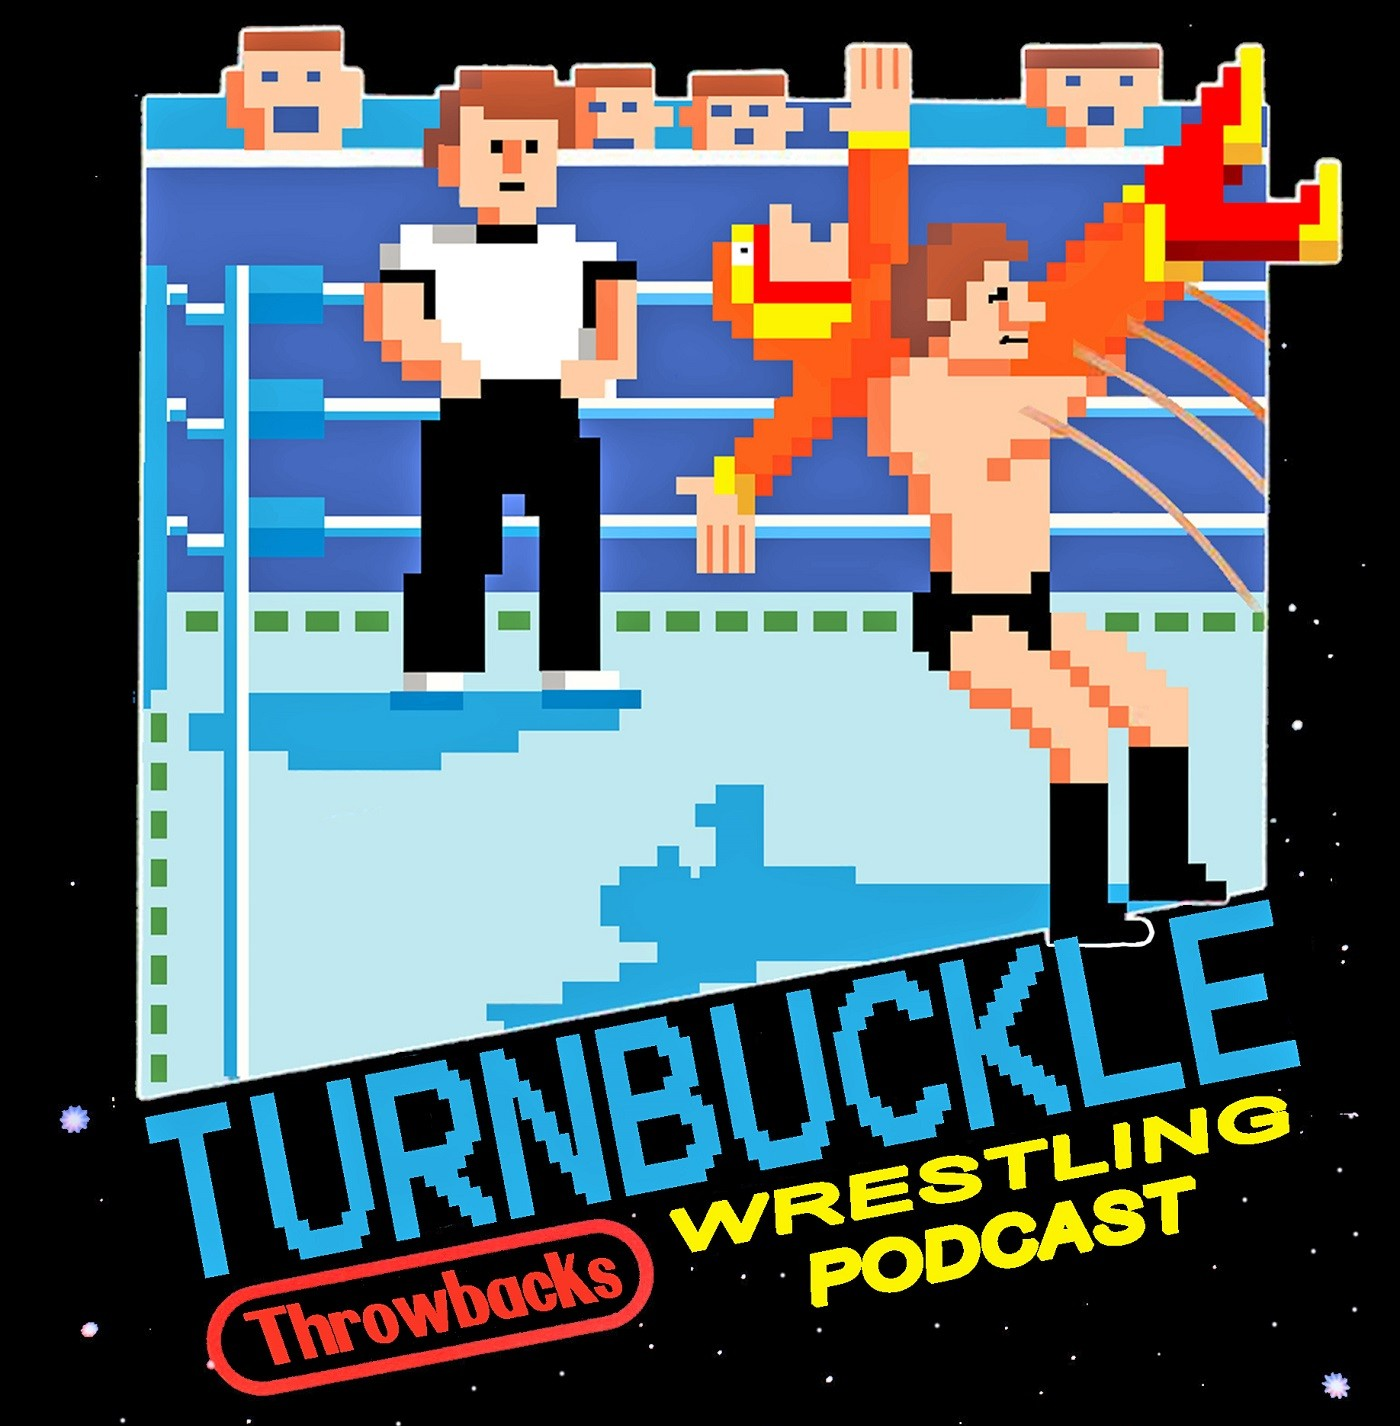 The Turnbuckle Throwbacks Wrestling Podcast